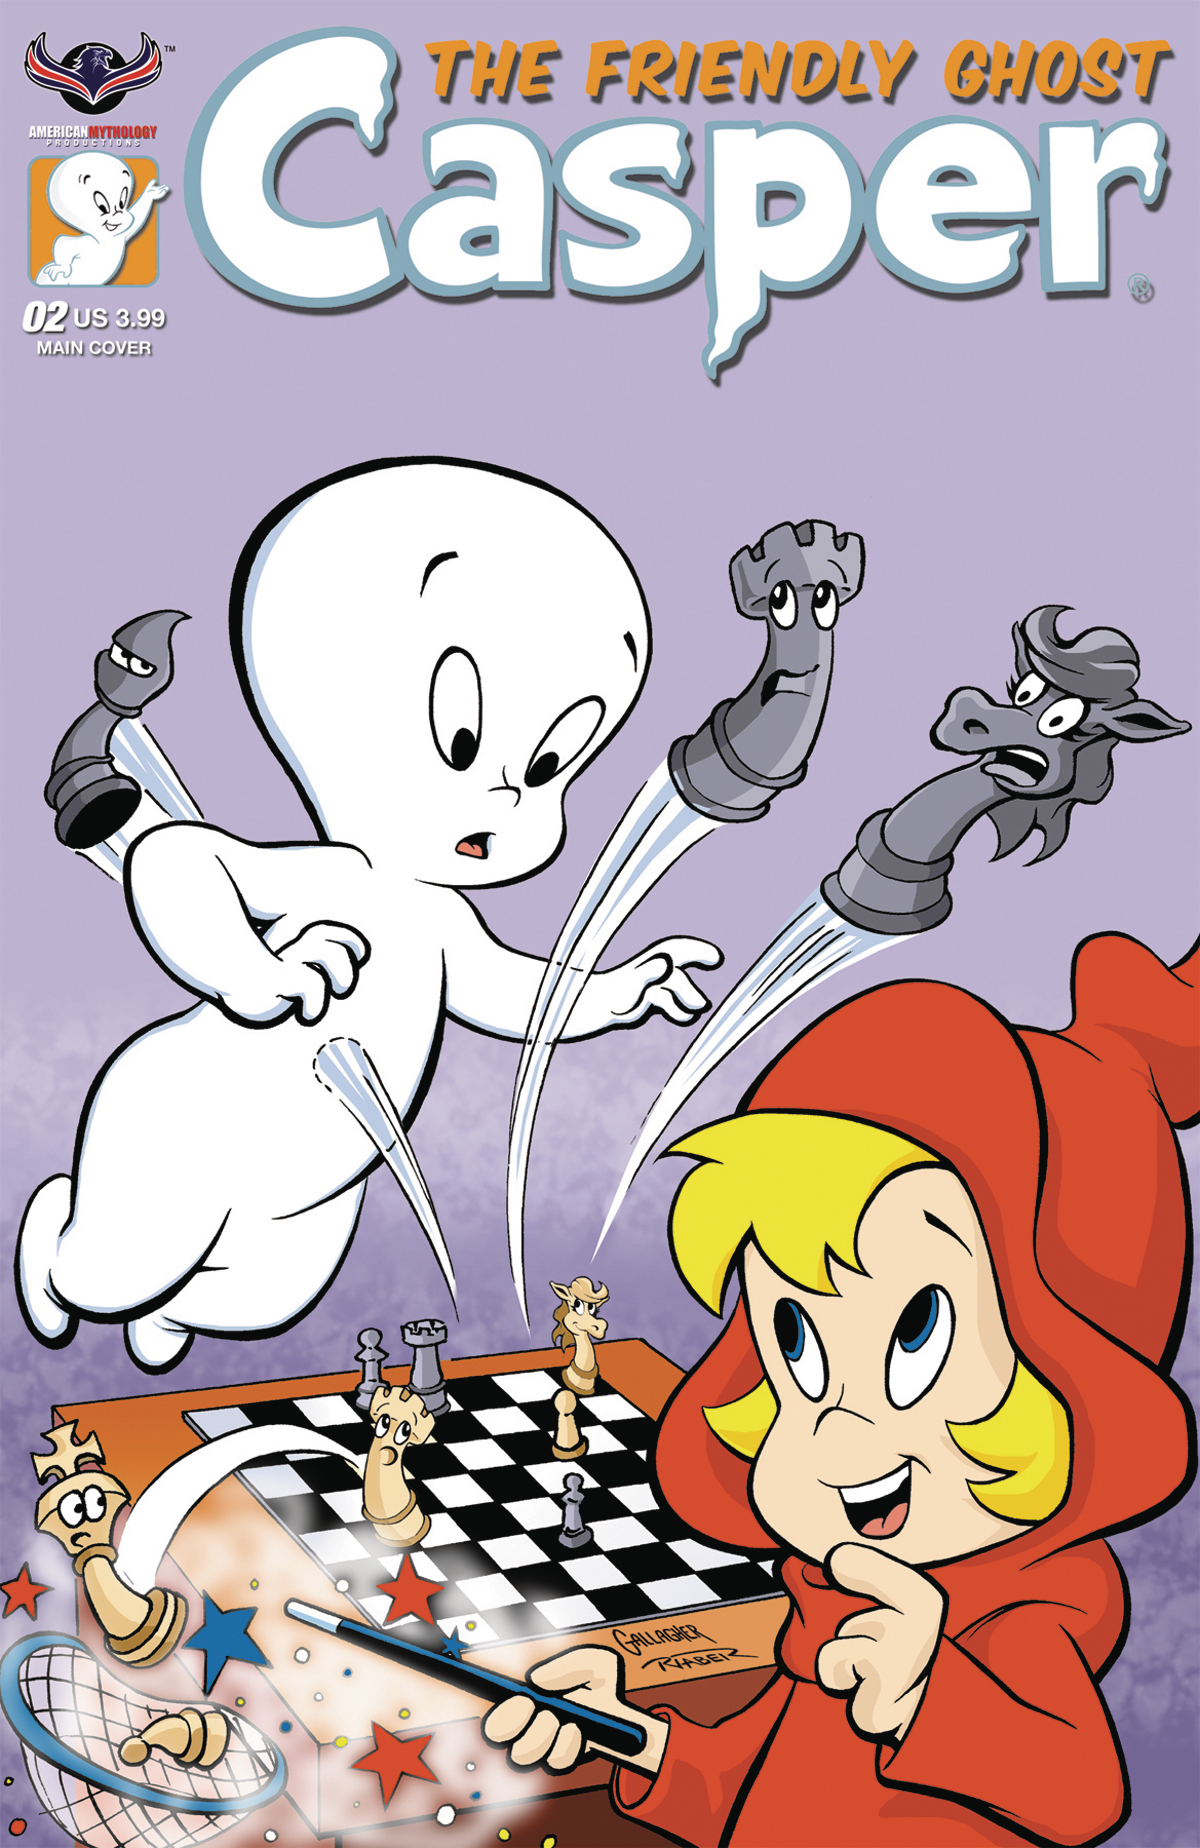 CASPER THE FRIENDLY GHOST #2 GALLAGHER SIGNED ED